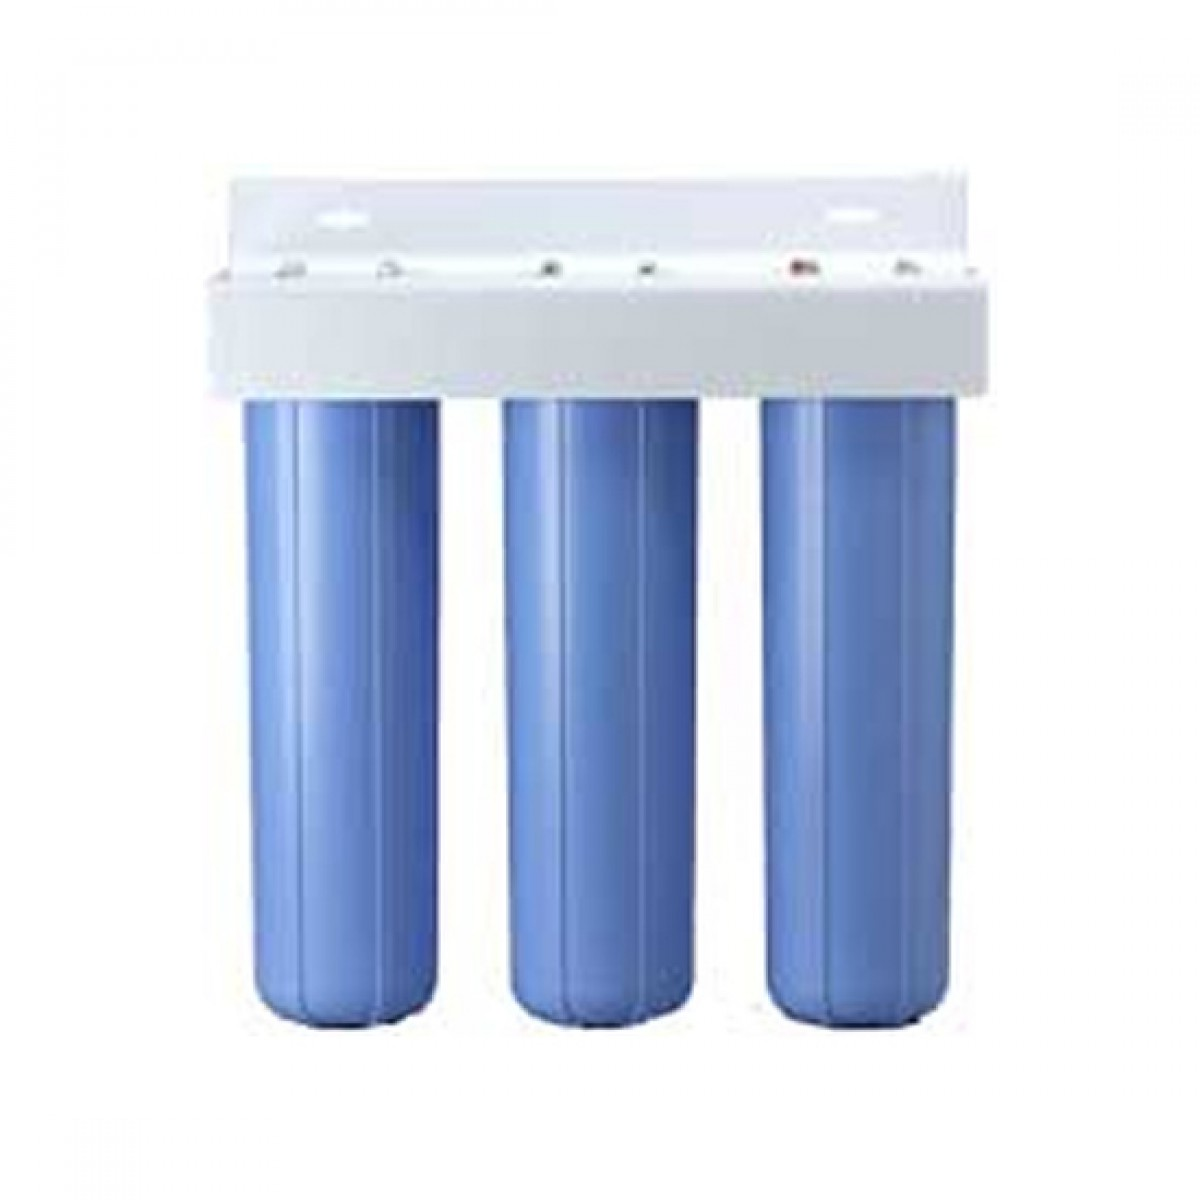 Big Water Filter Systems Bbfs 222 Three Big Blue Housing Water Filter System